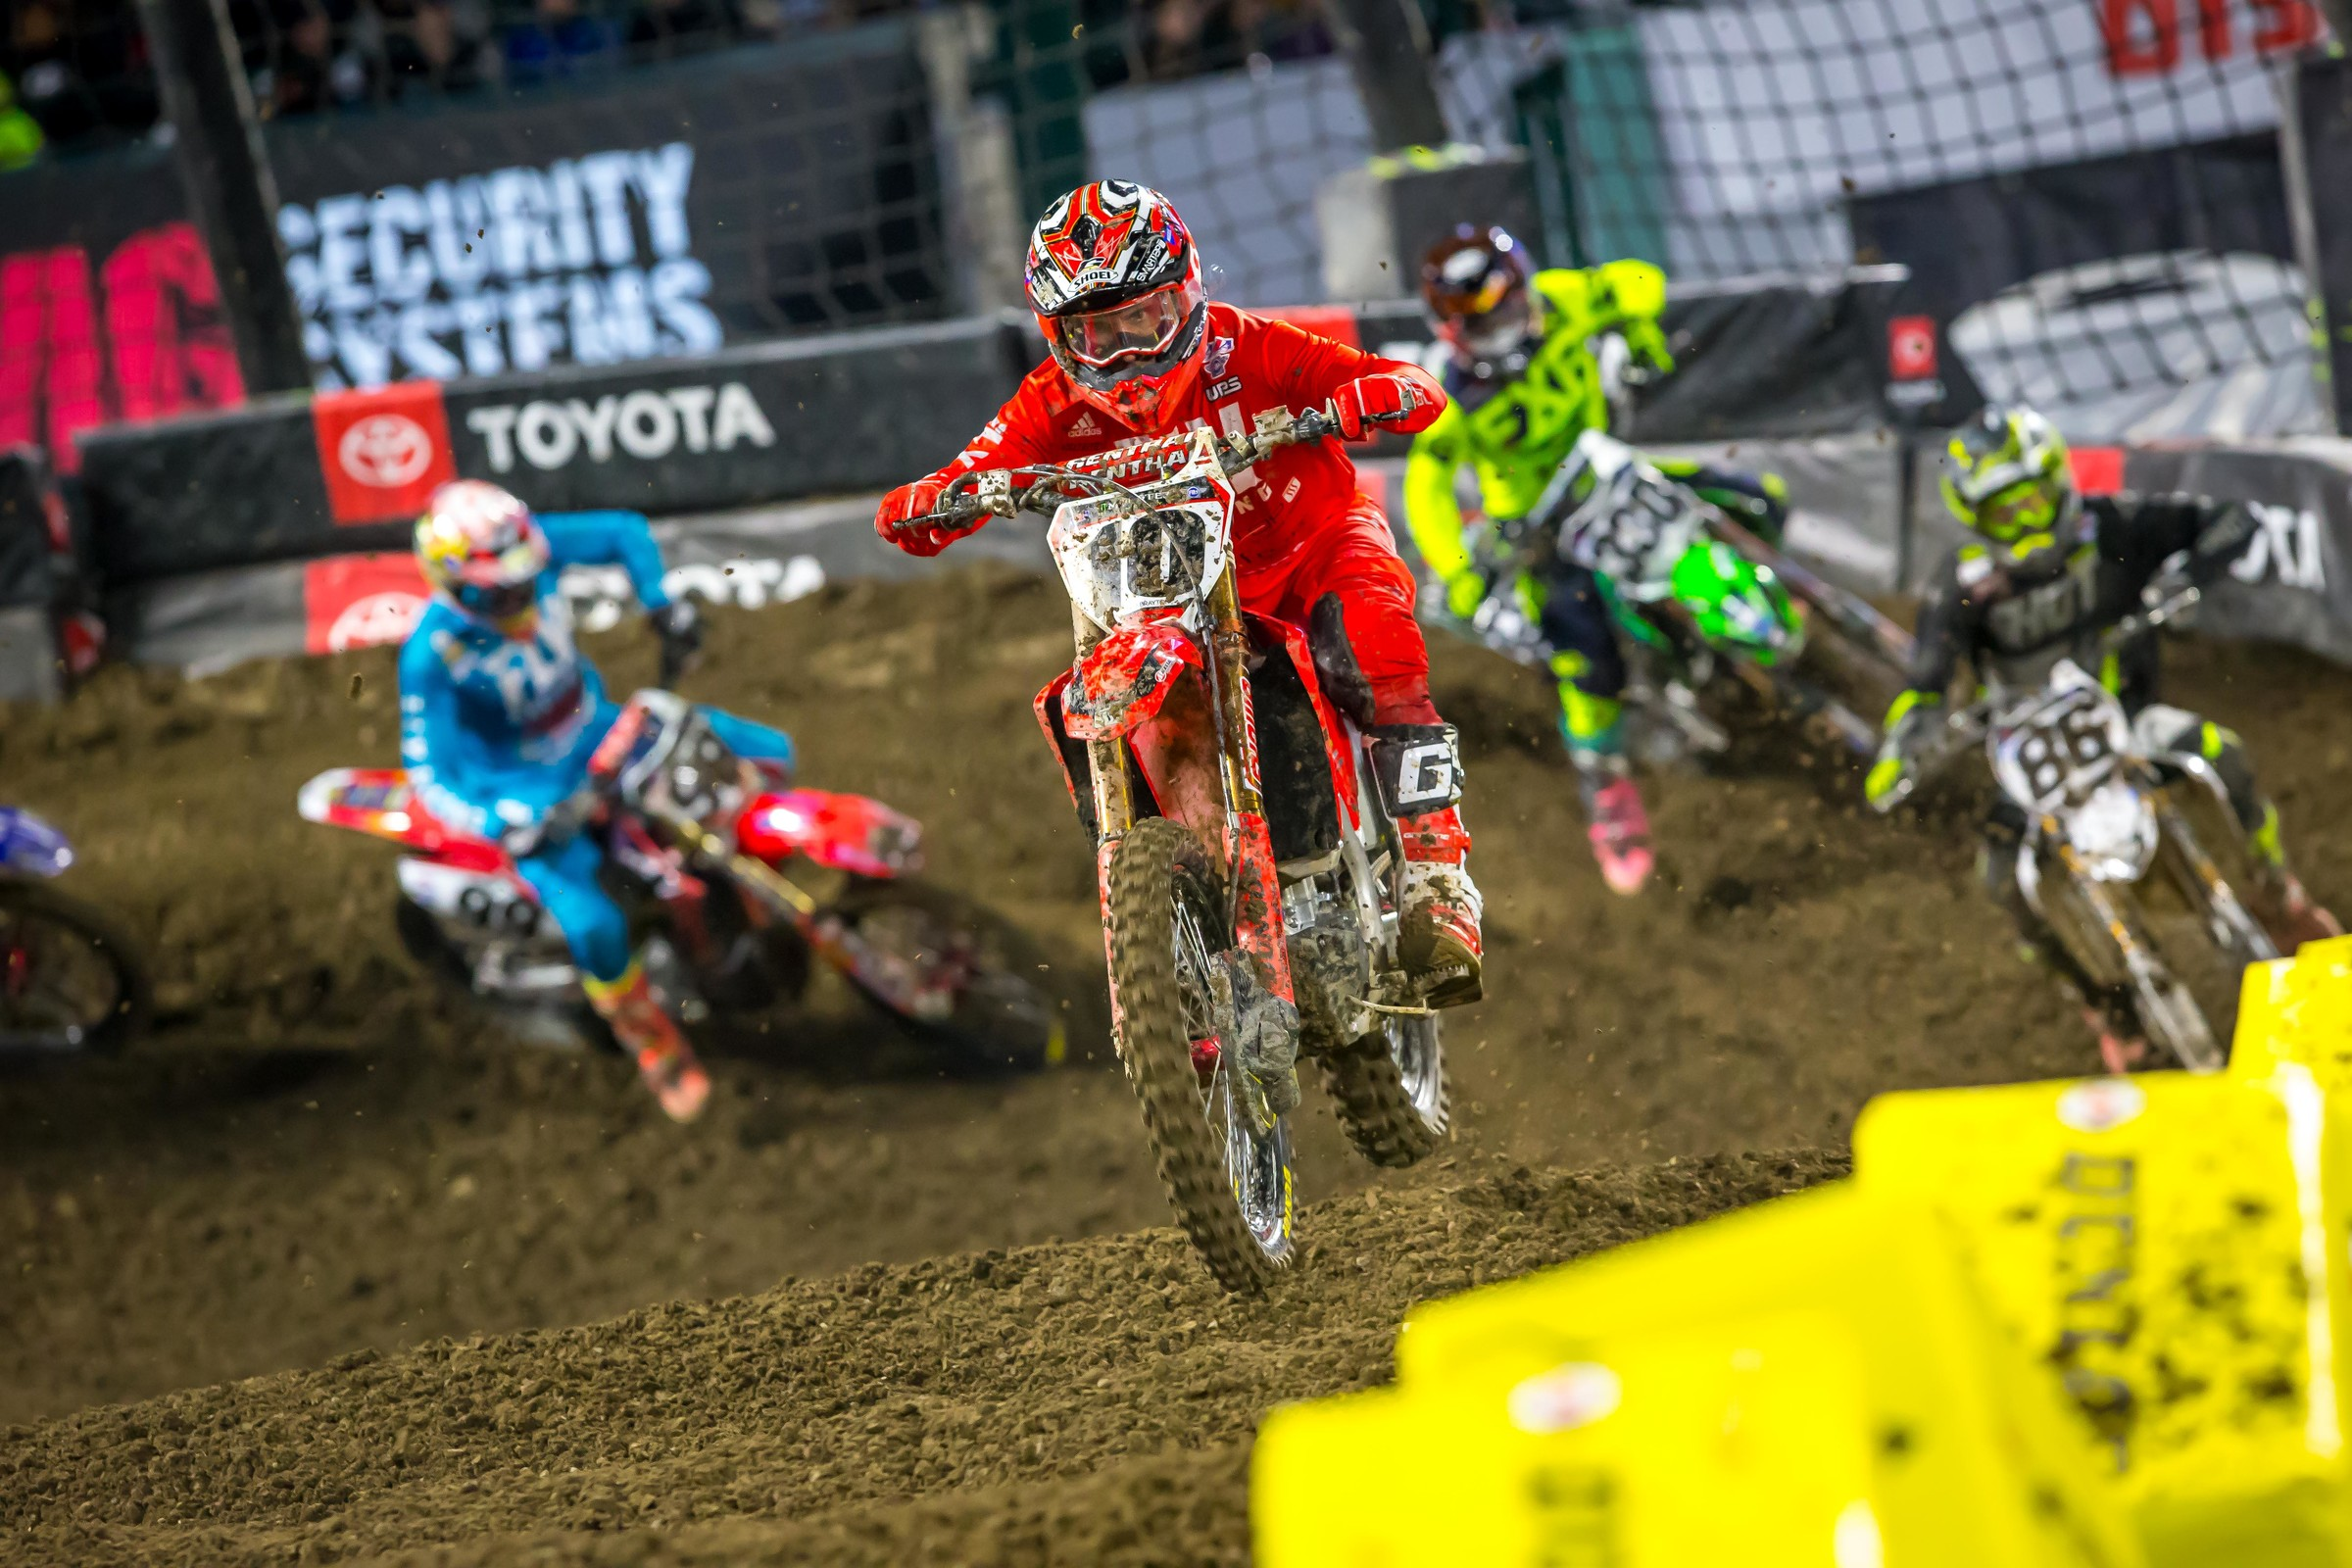 After looking solid in practice, Justin Brayton struggled with the conditions in the main event.